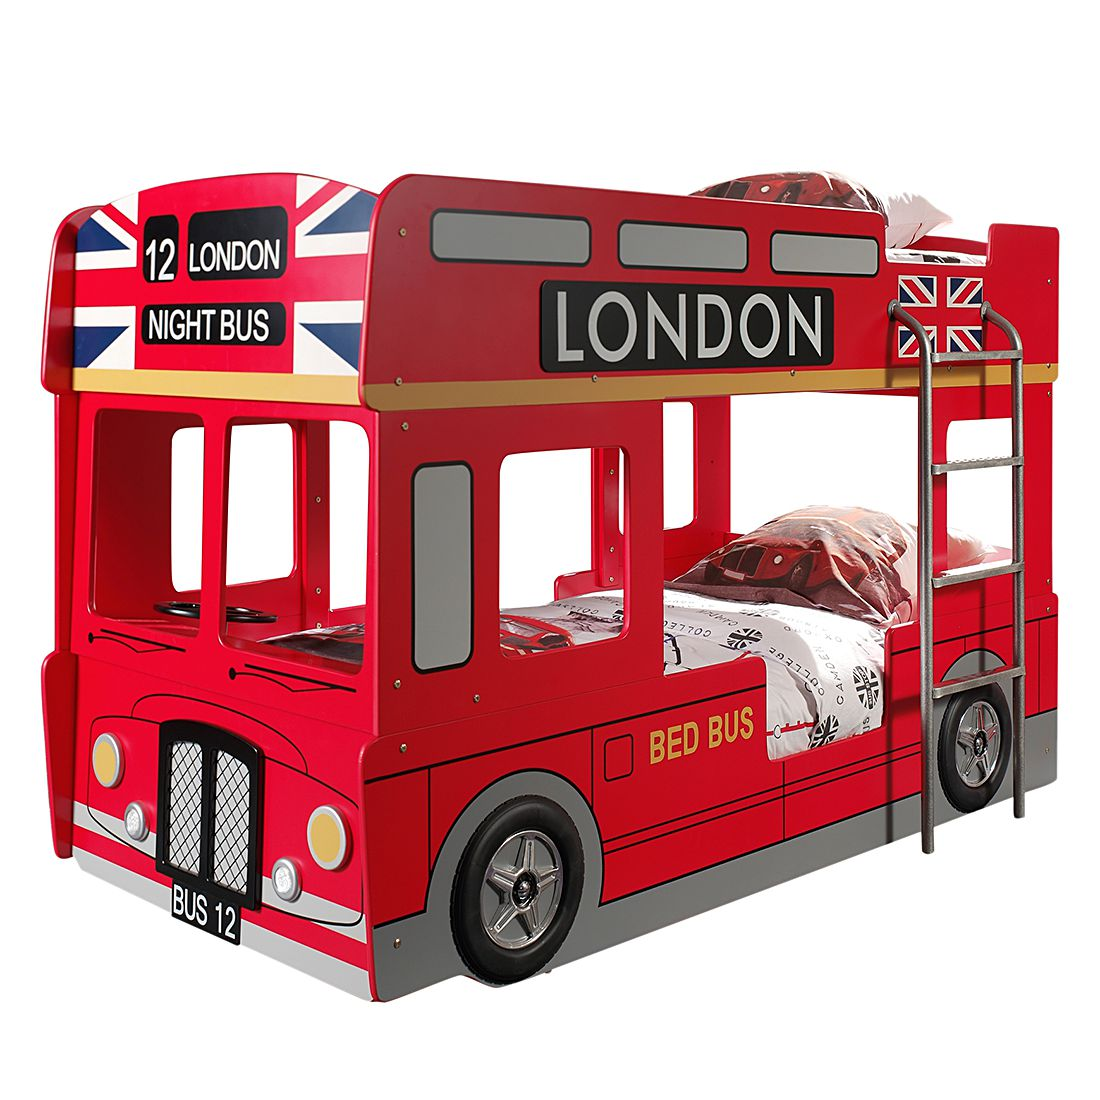 Autobett London Bus - Rot, Vipack